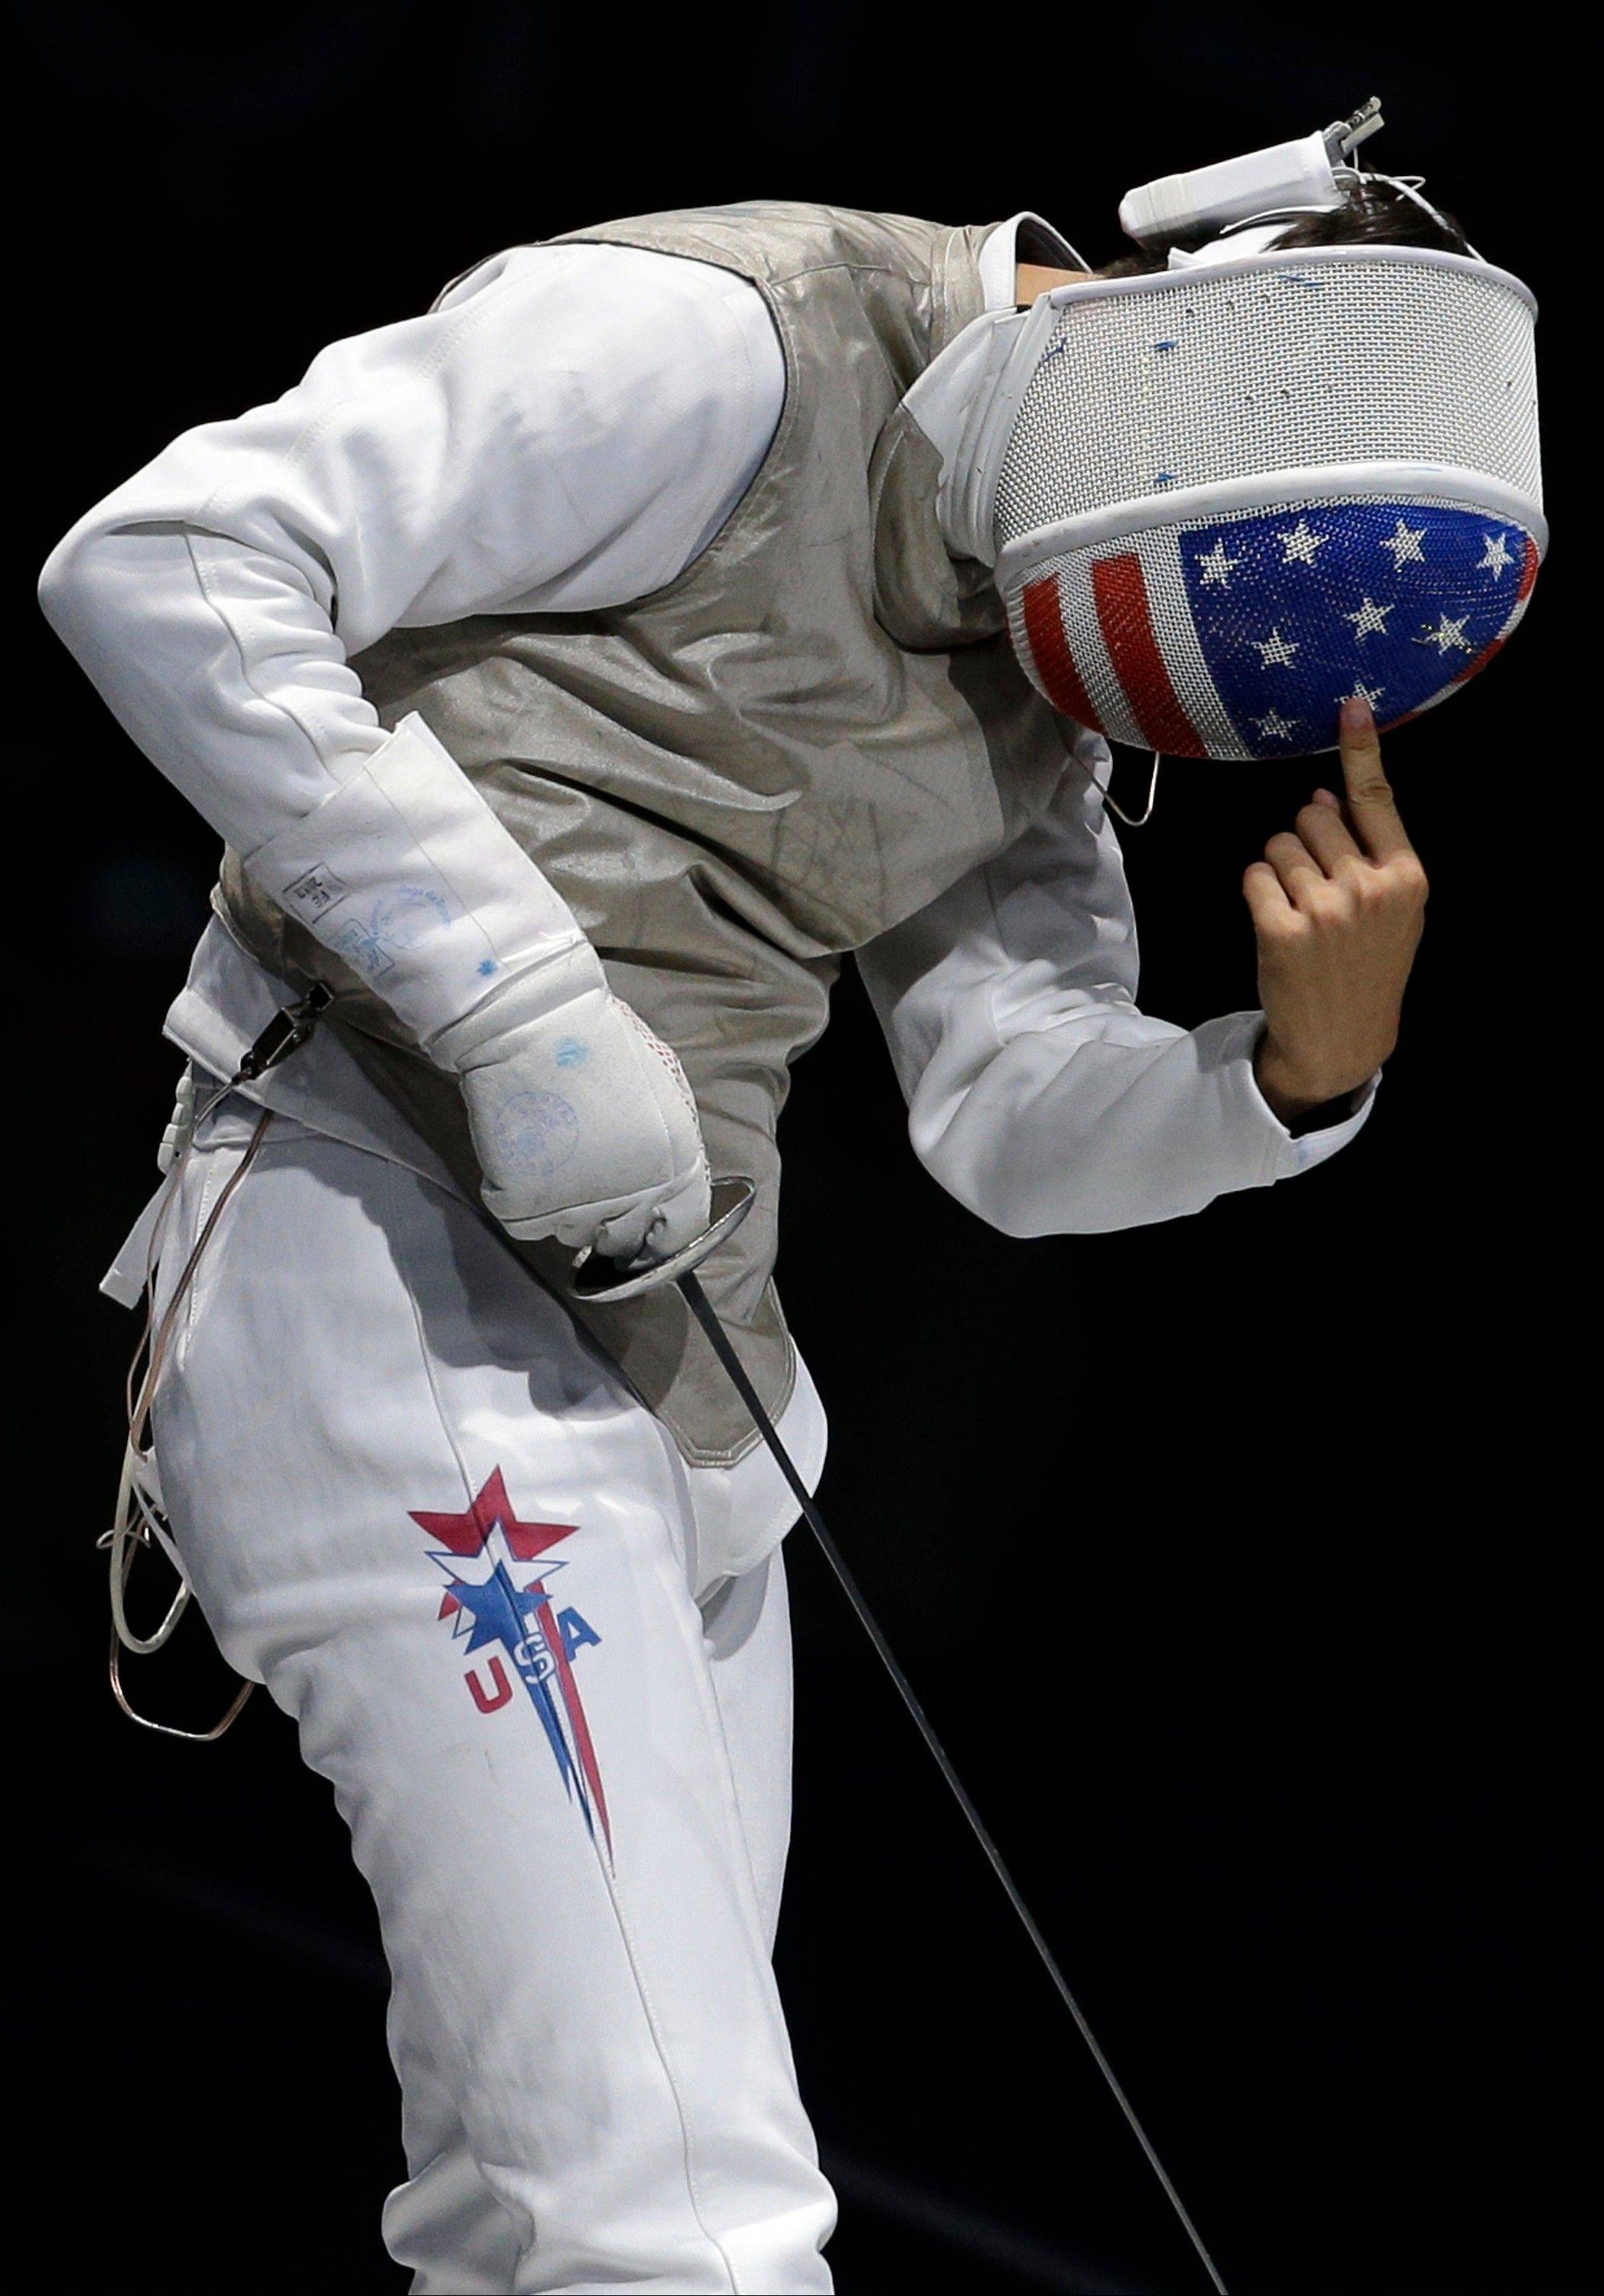 Alexander Massialas of the United States reacts while competing against Sebastian Bachman of Germany in the bronze medal match during the men's foil team fencing competition at the 2012 Summer Olympics, Sunday, Aug. 5, 2012, in London.